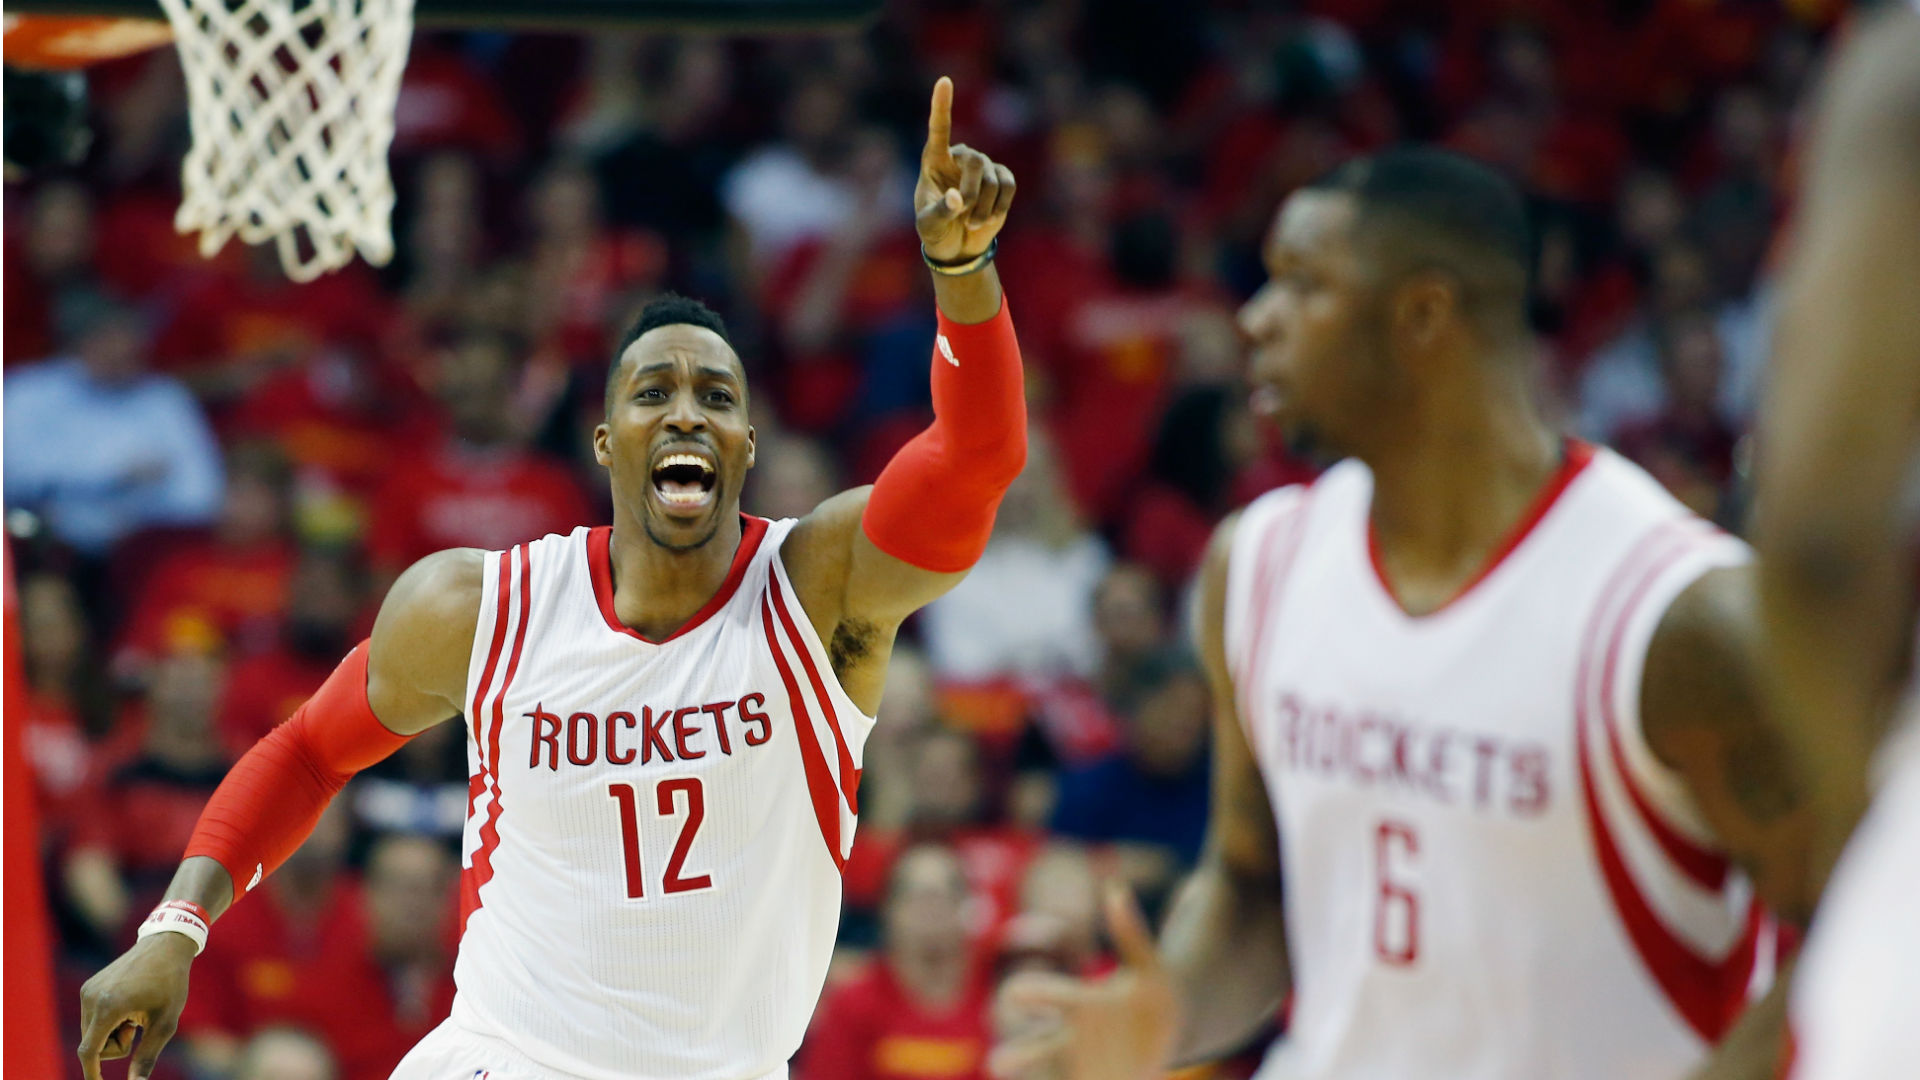 Wednesday NBA playoff props offered at Vegas SuperBook